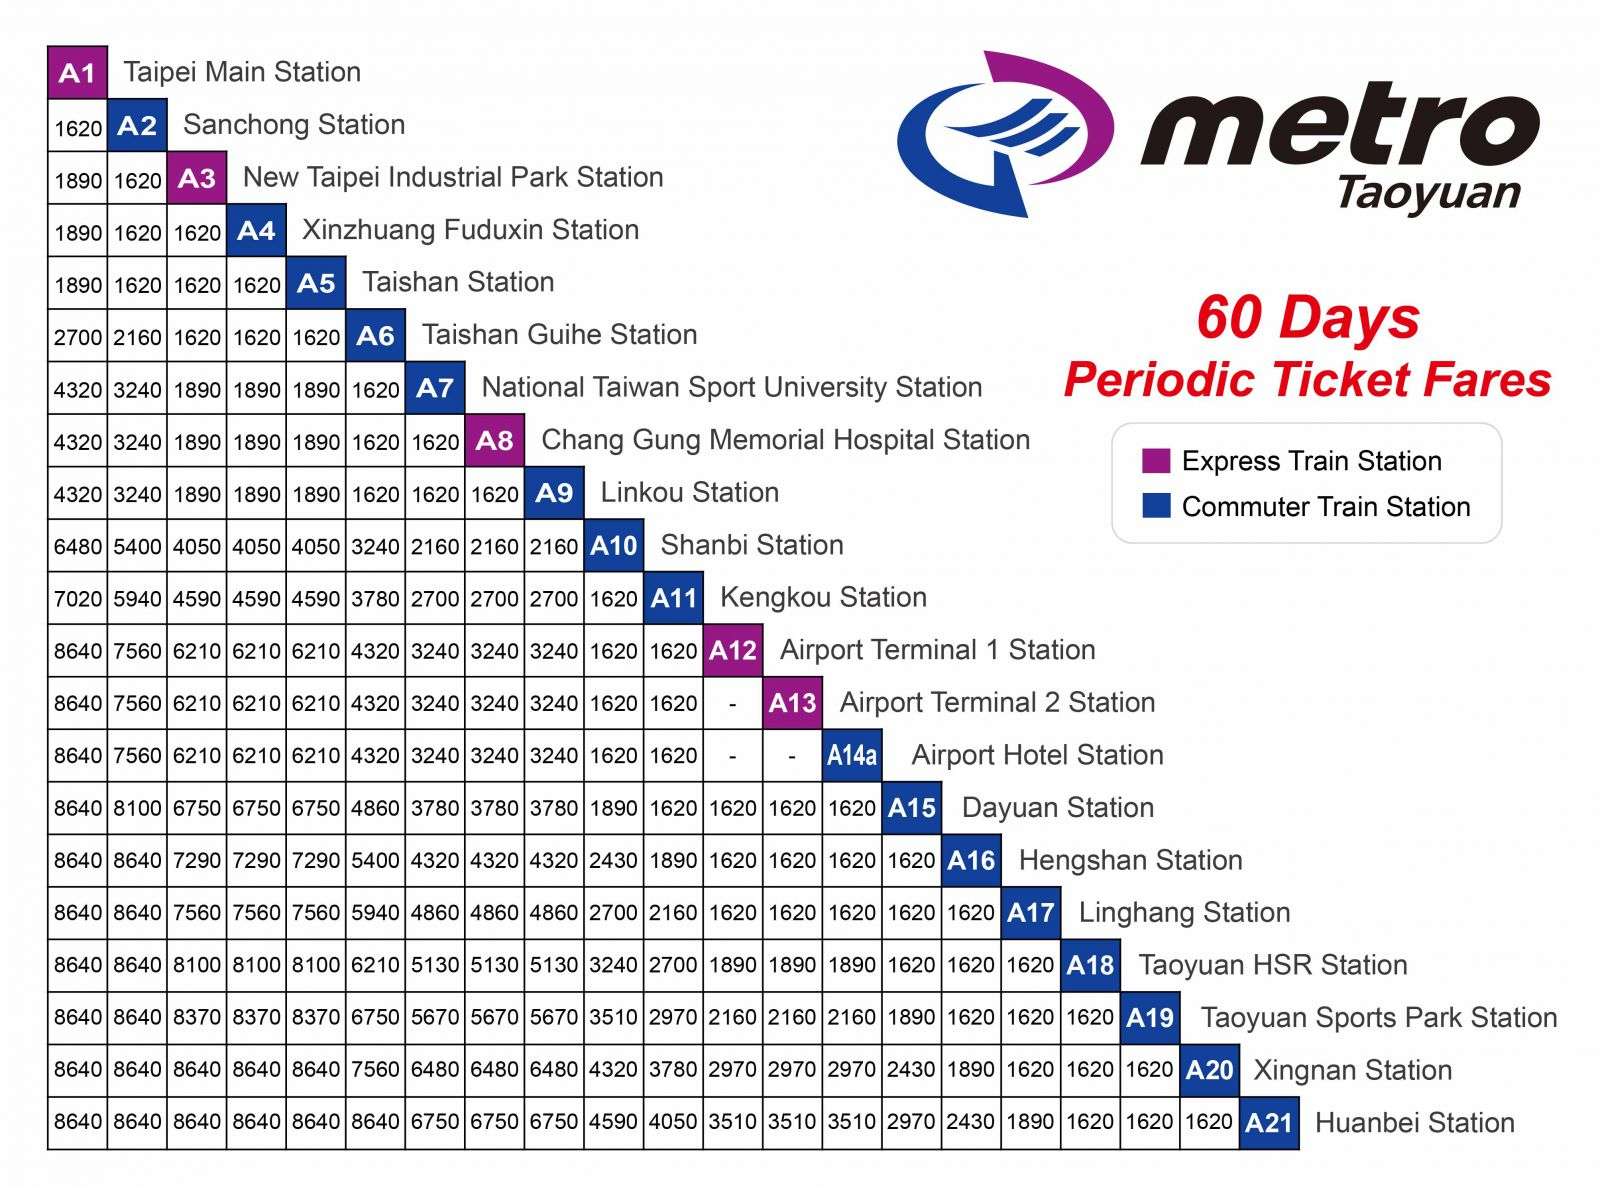 60 day periodic ticket fares